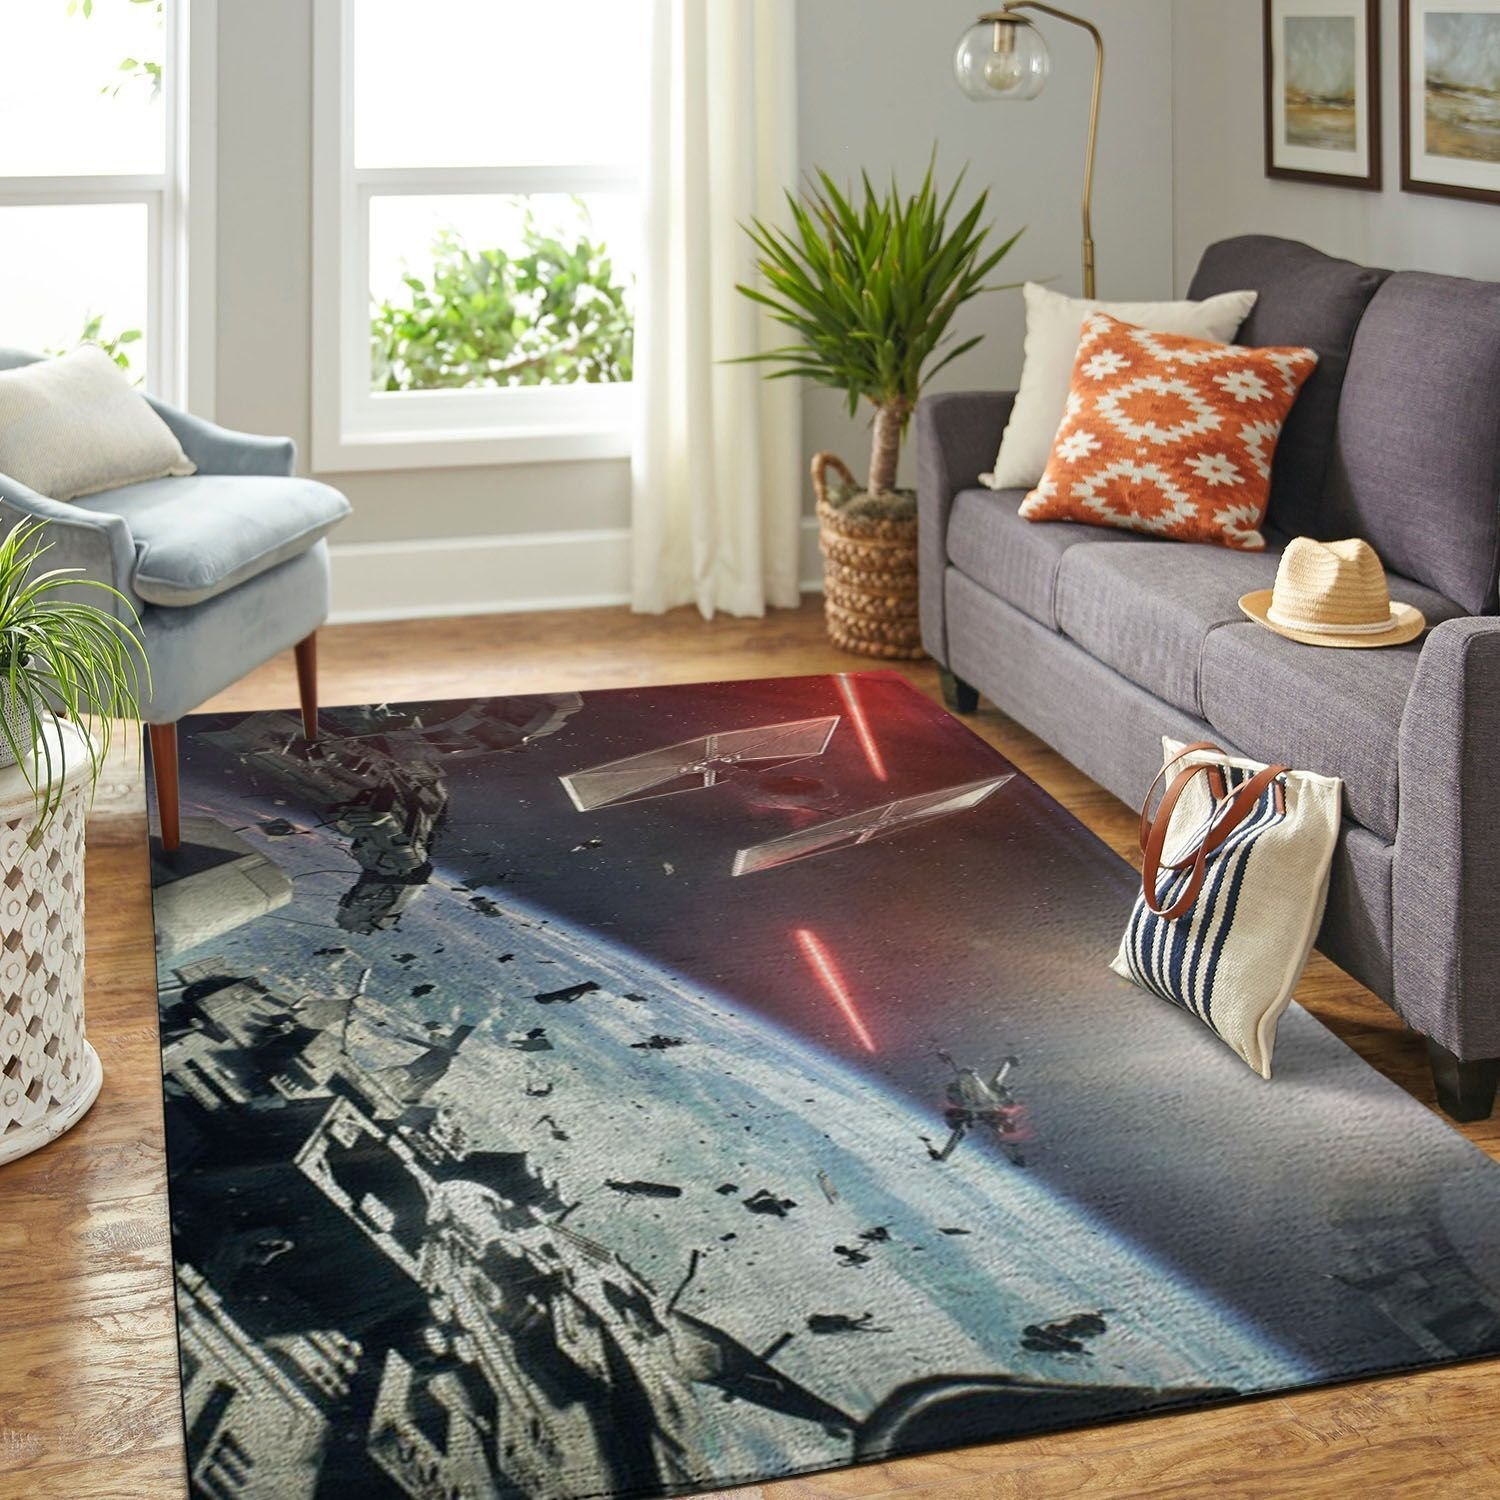 Amazon Starwars Living Room Area No6654 Rug